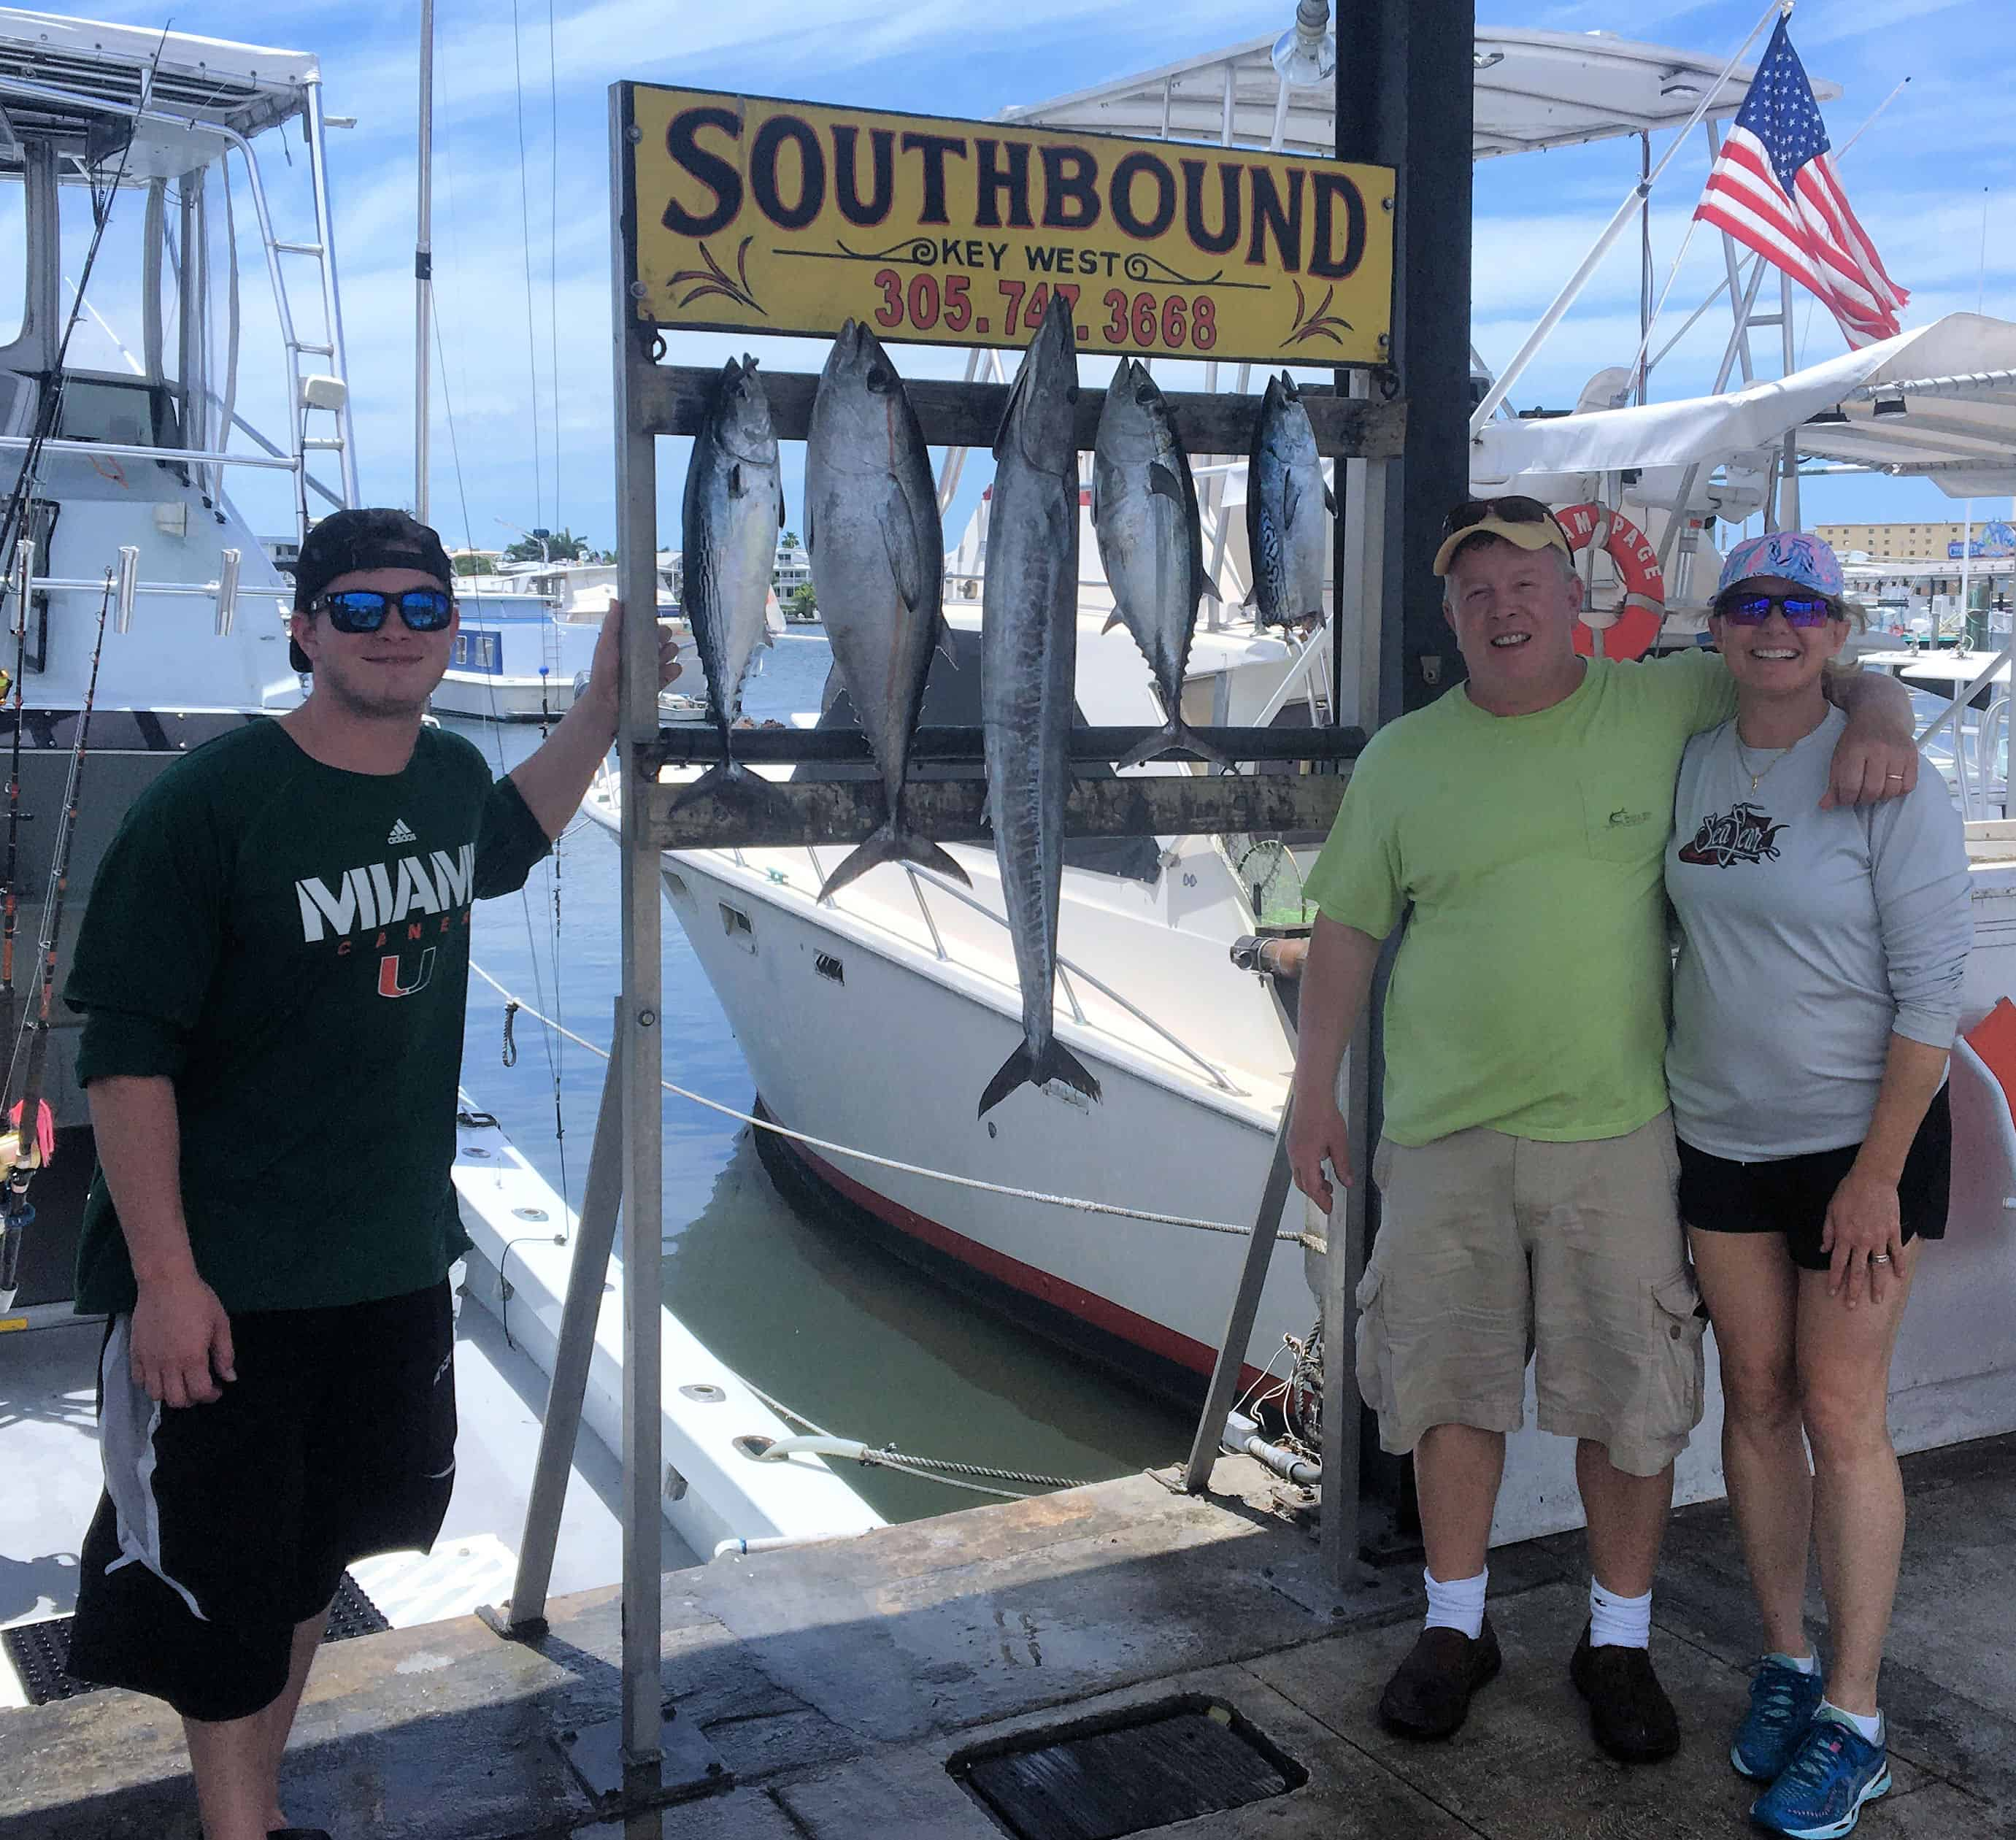 Fish caught on May 3, 2020 on the Charter Boat Southbound from Key West, Florida